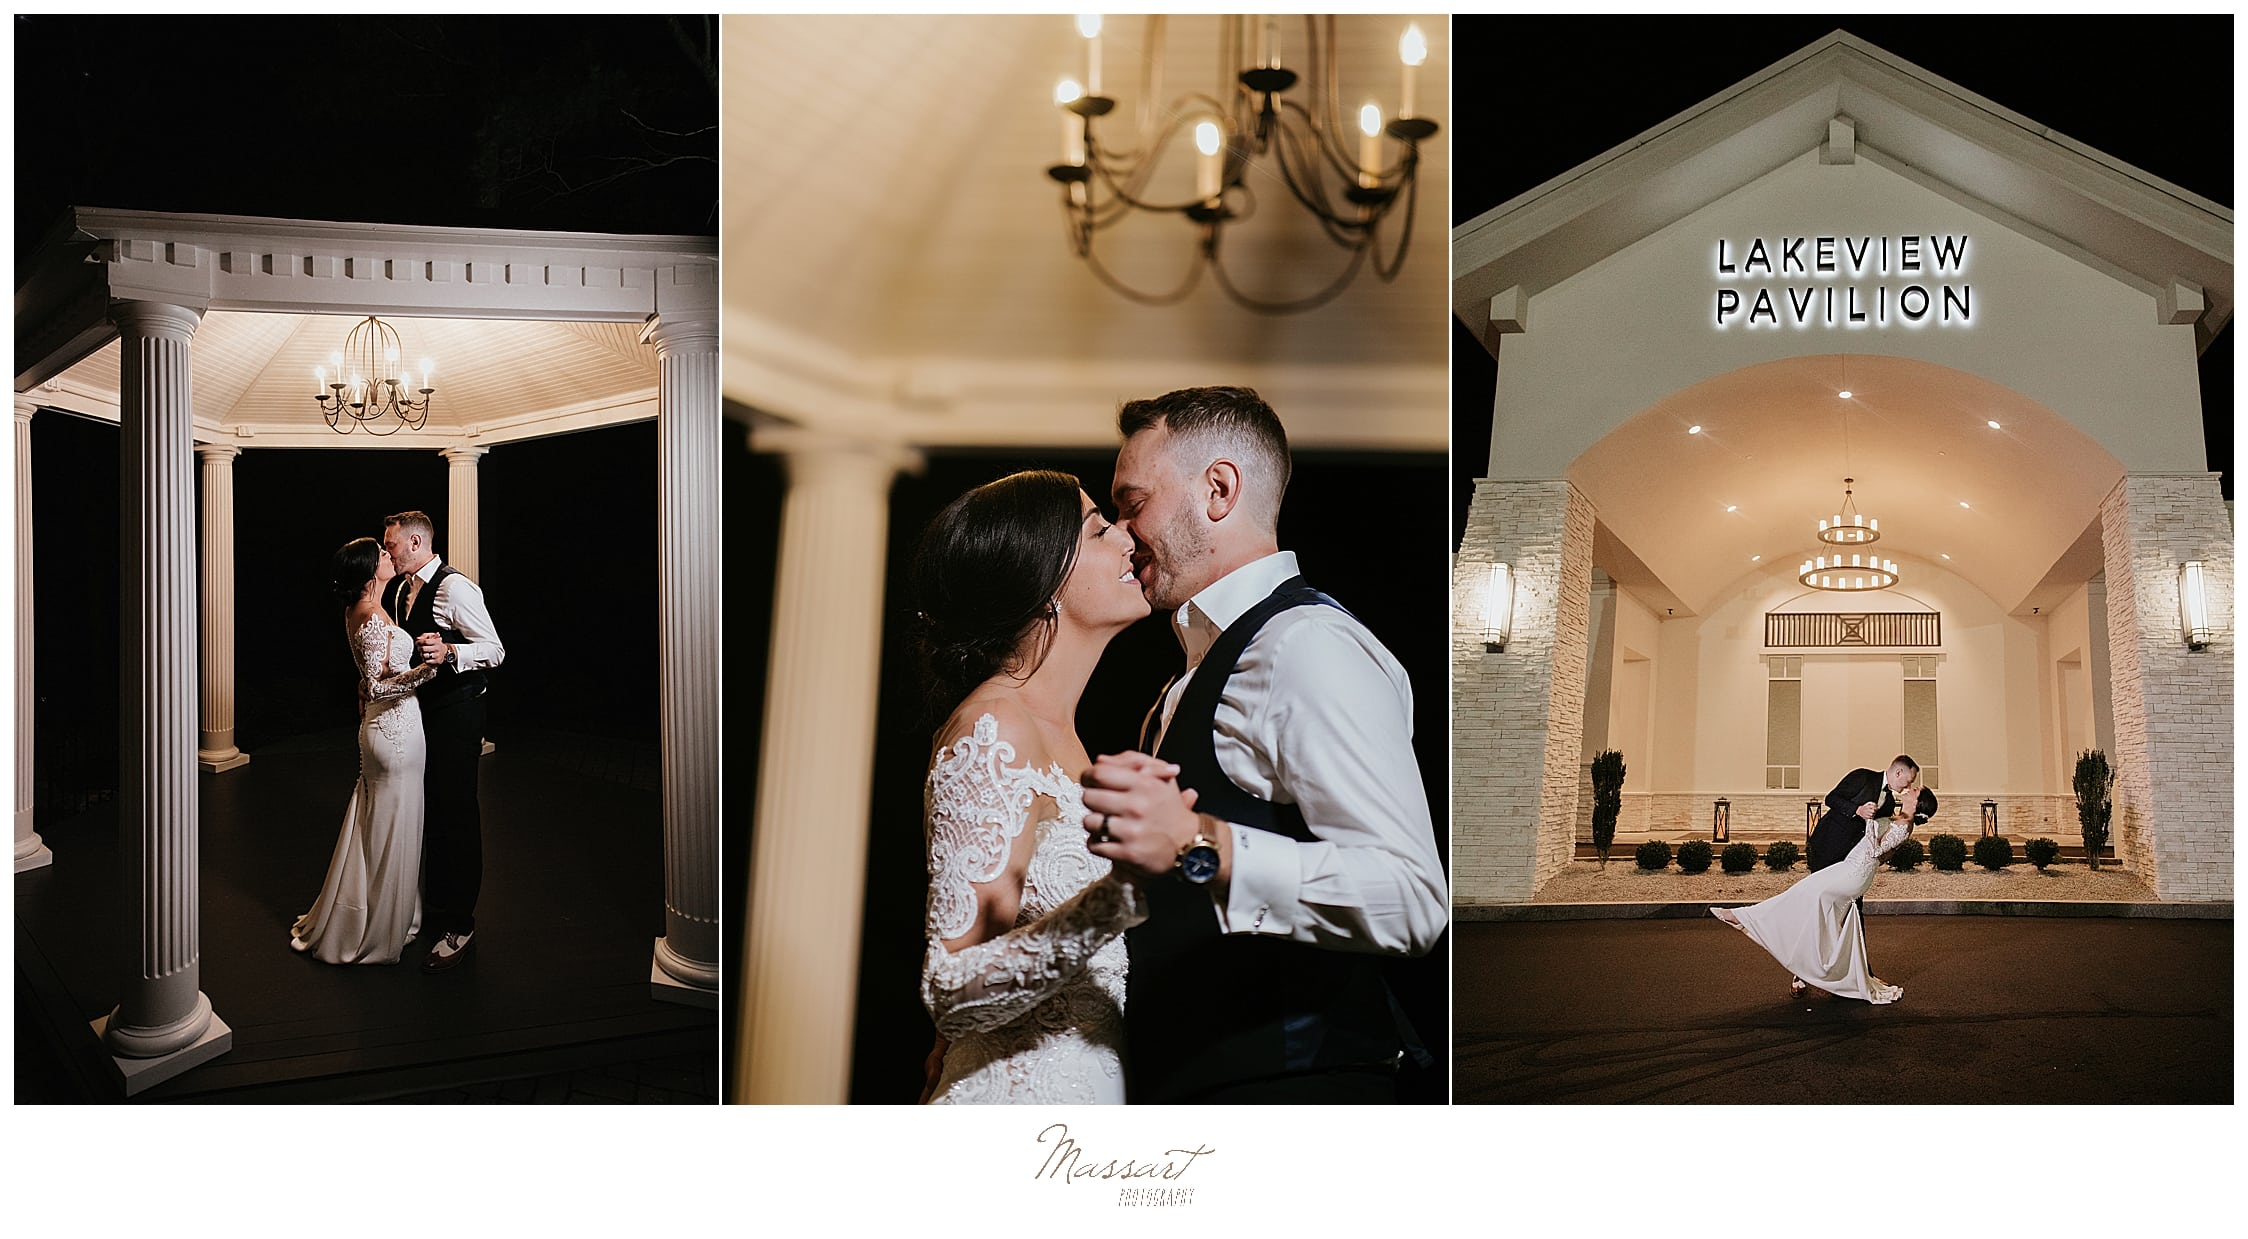 nighttime portraits of bride and groom at Lakeview Pavilion in MA with Massart Photography